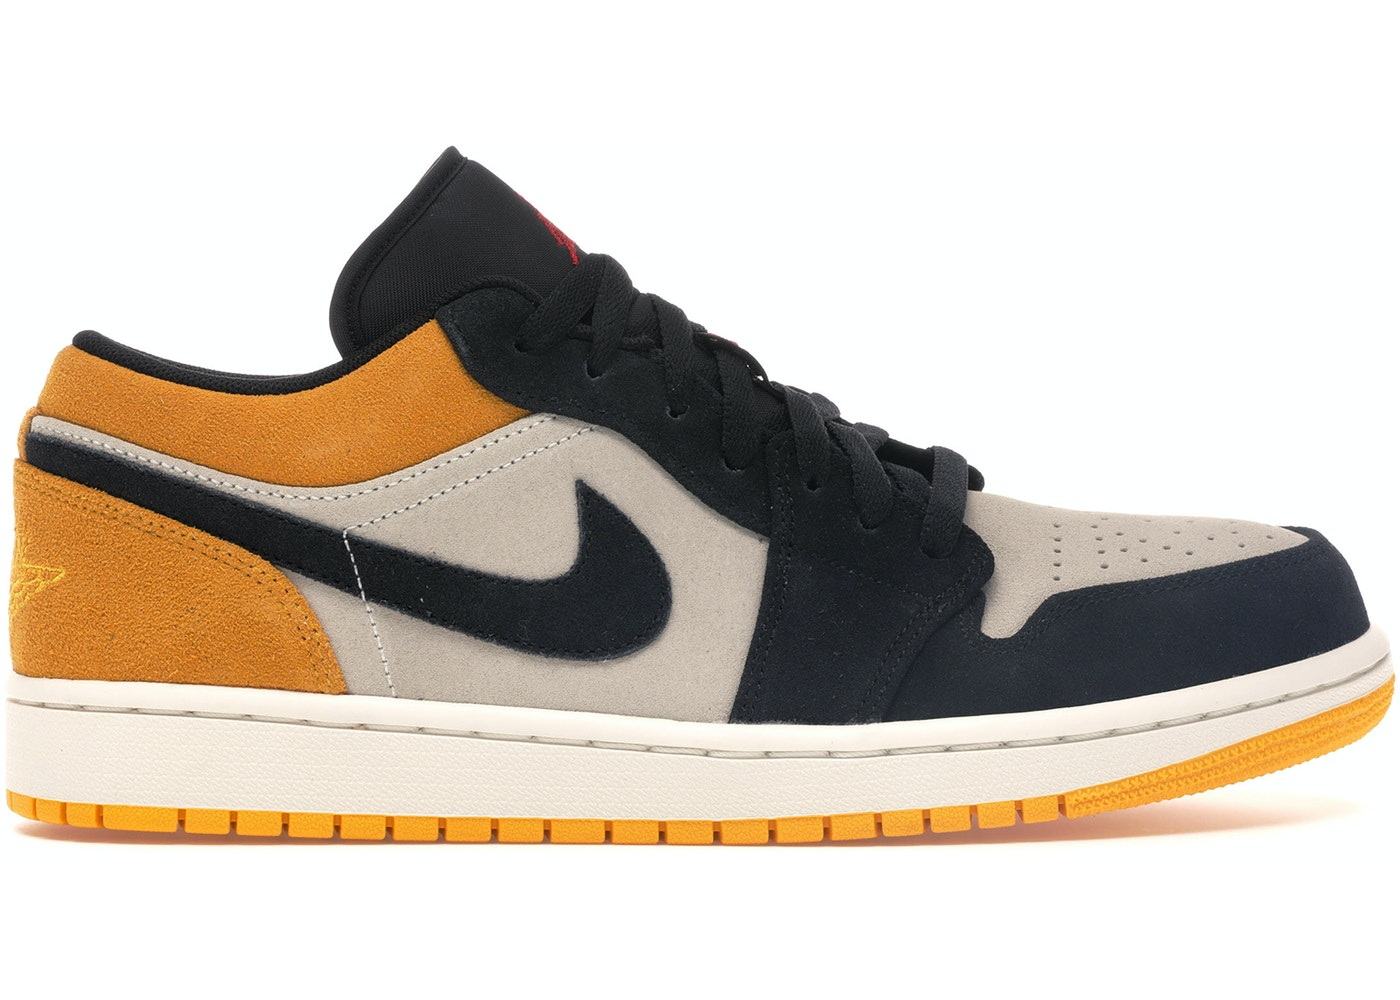 info for 956eb c9042 Jordan 1 Low Sail University Gold Black - 553558-127